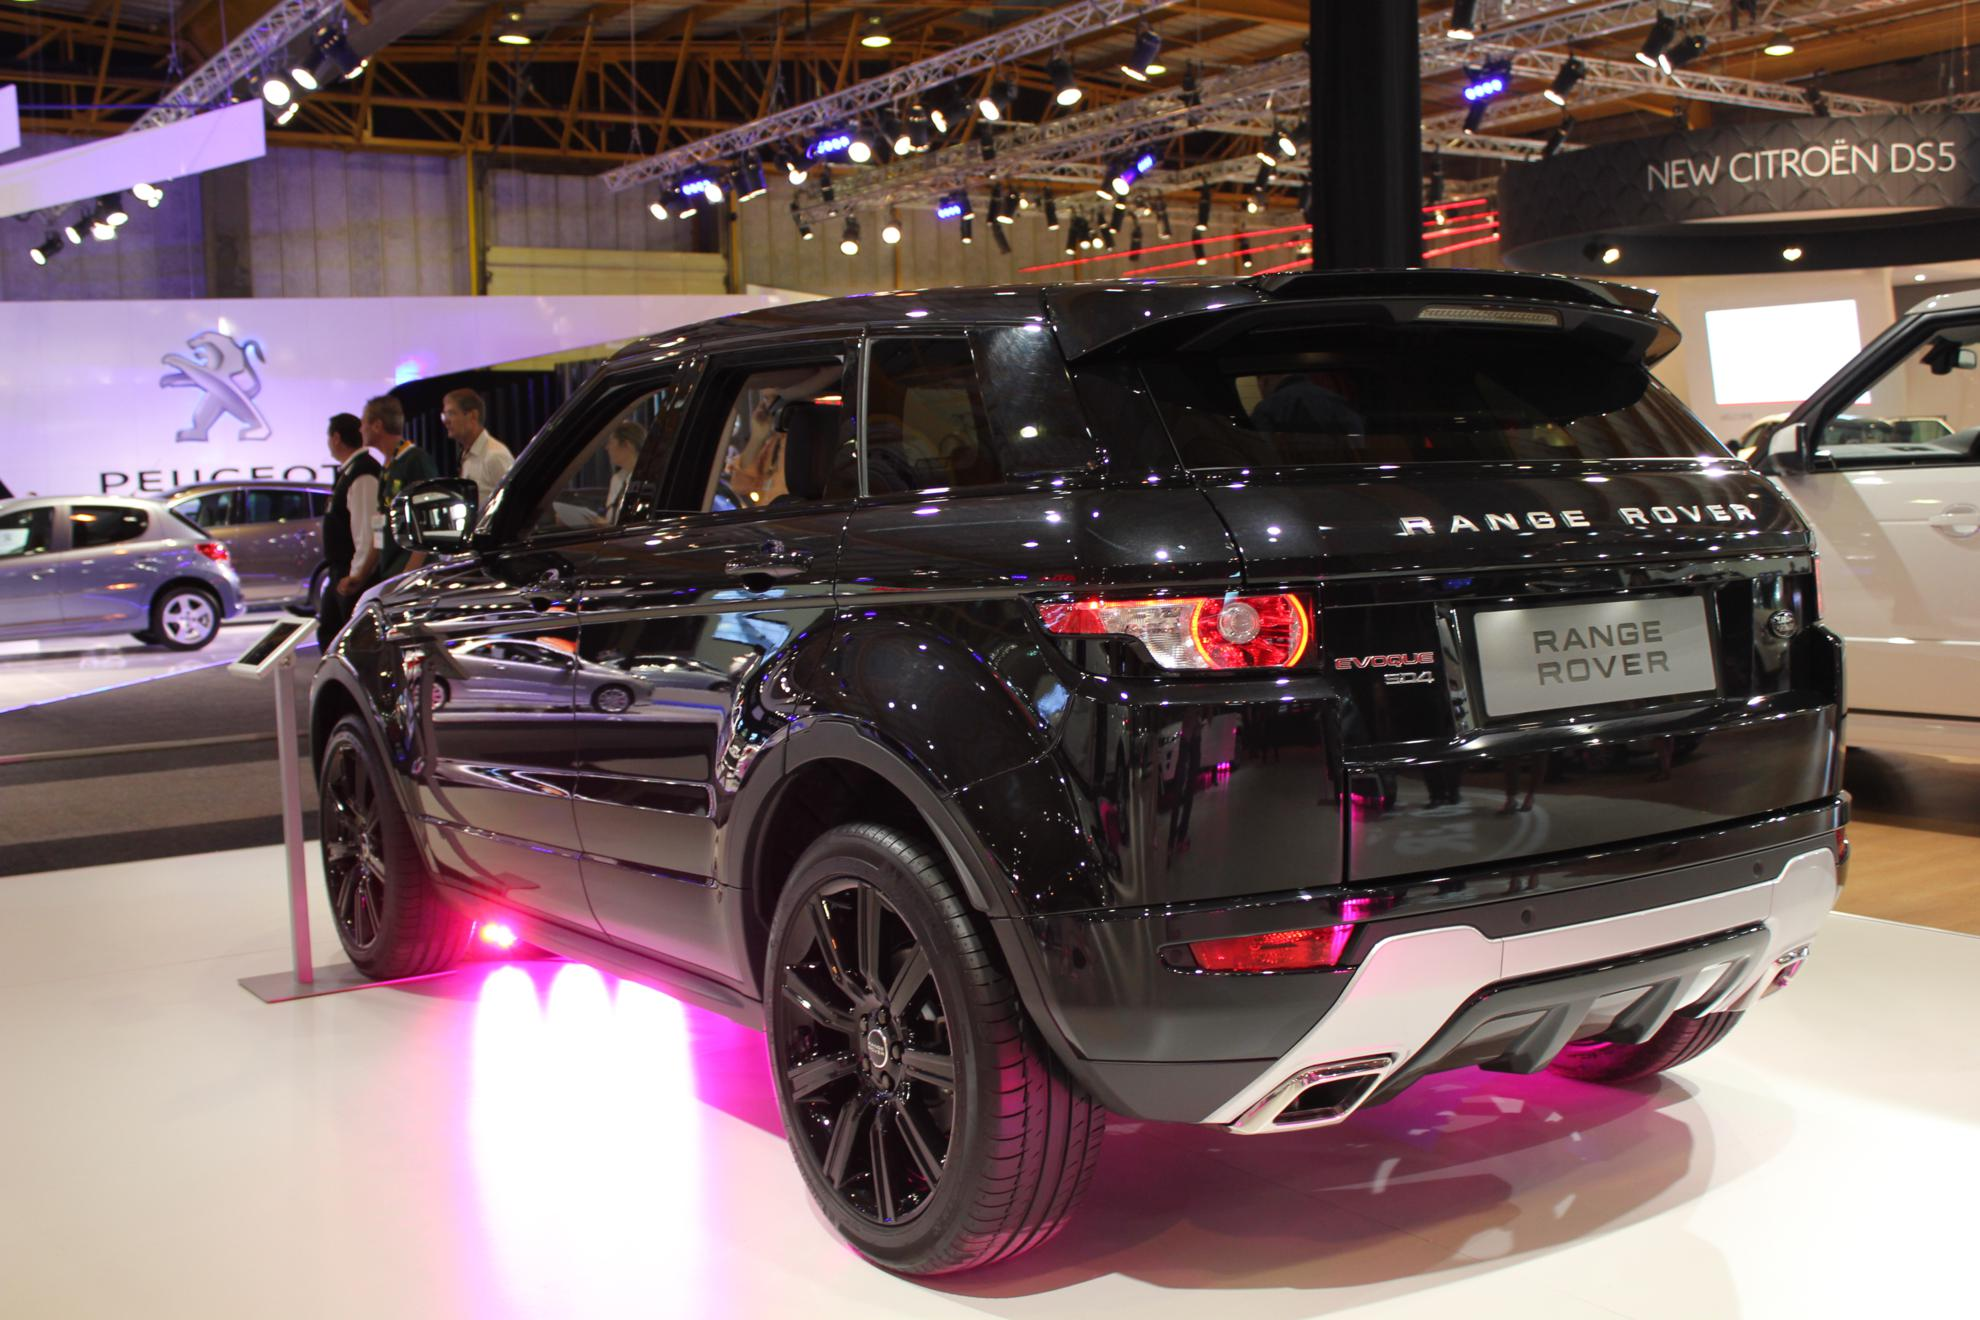 Range Rover Evoque 2011 - Black